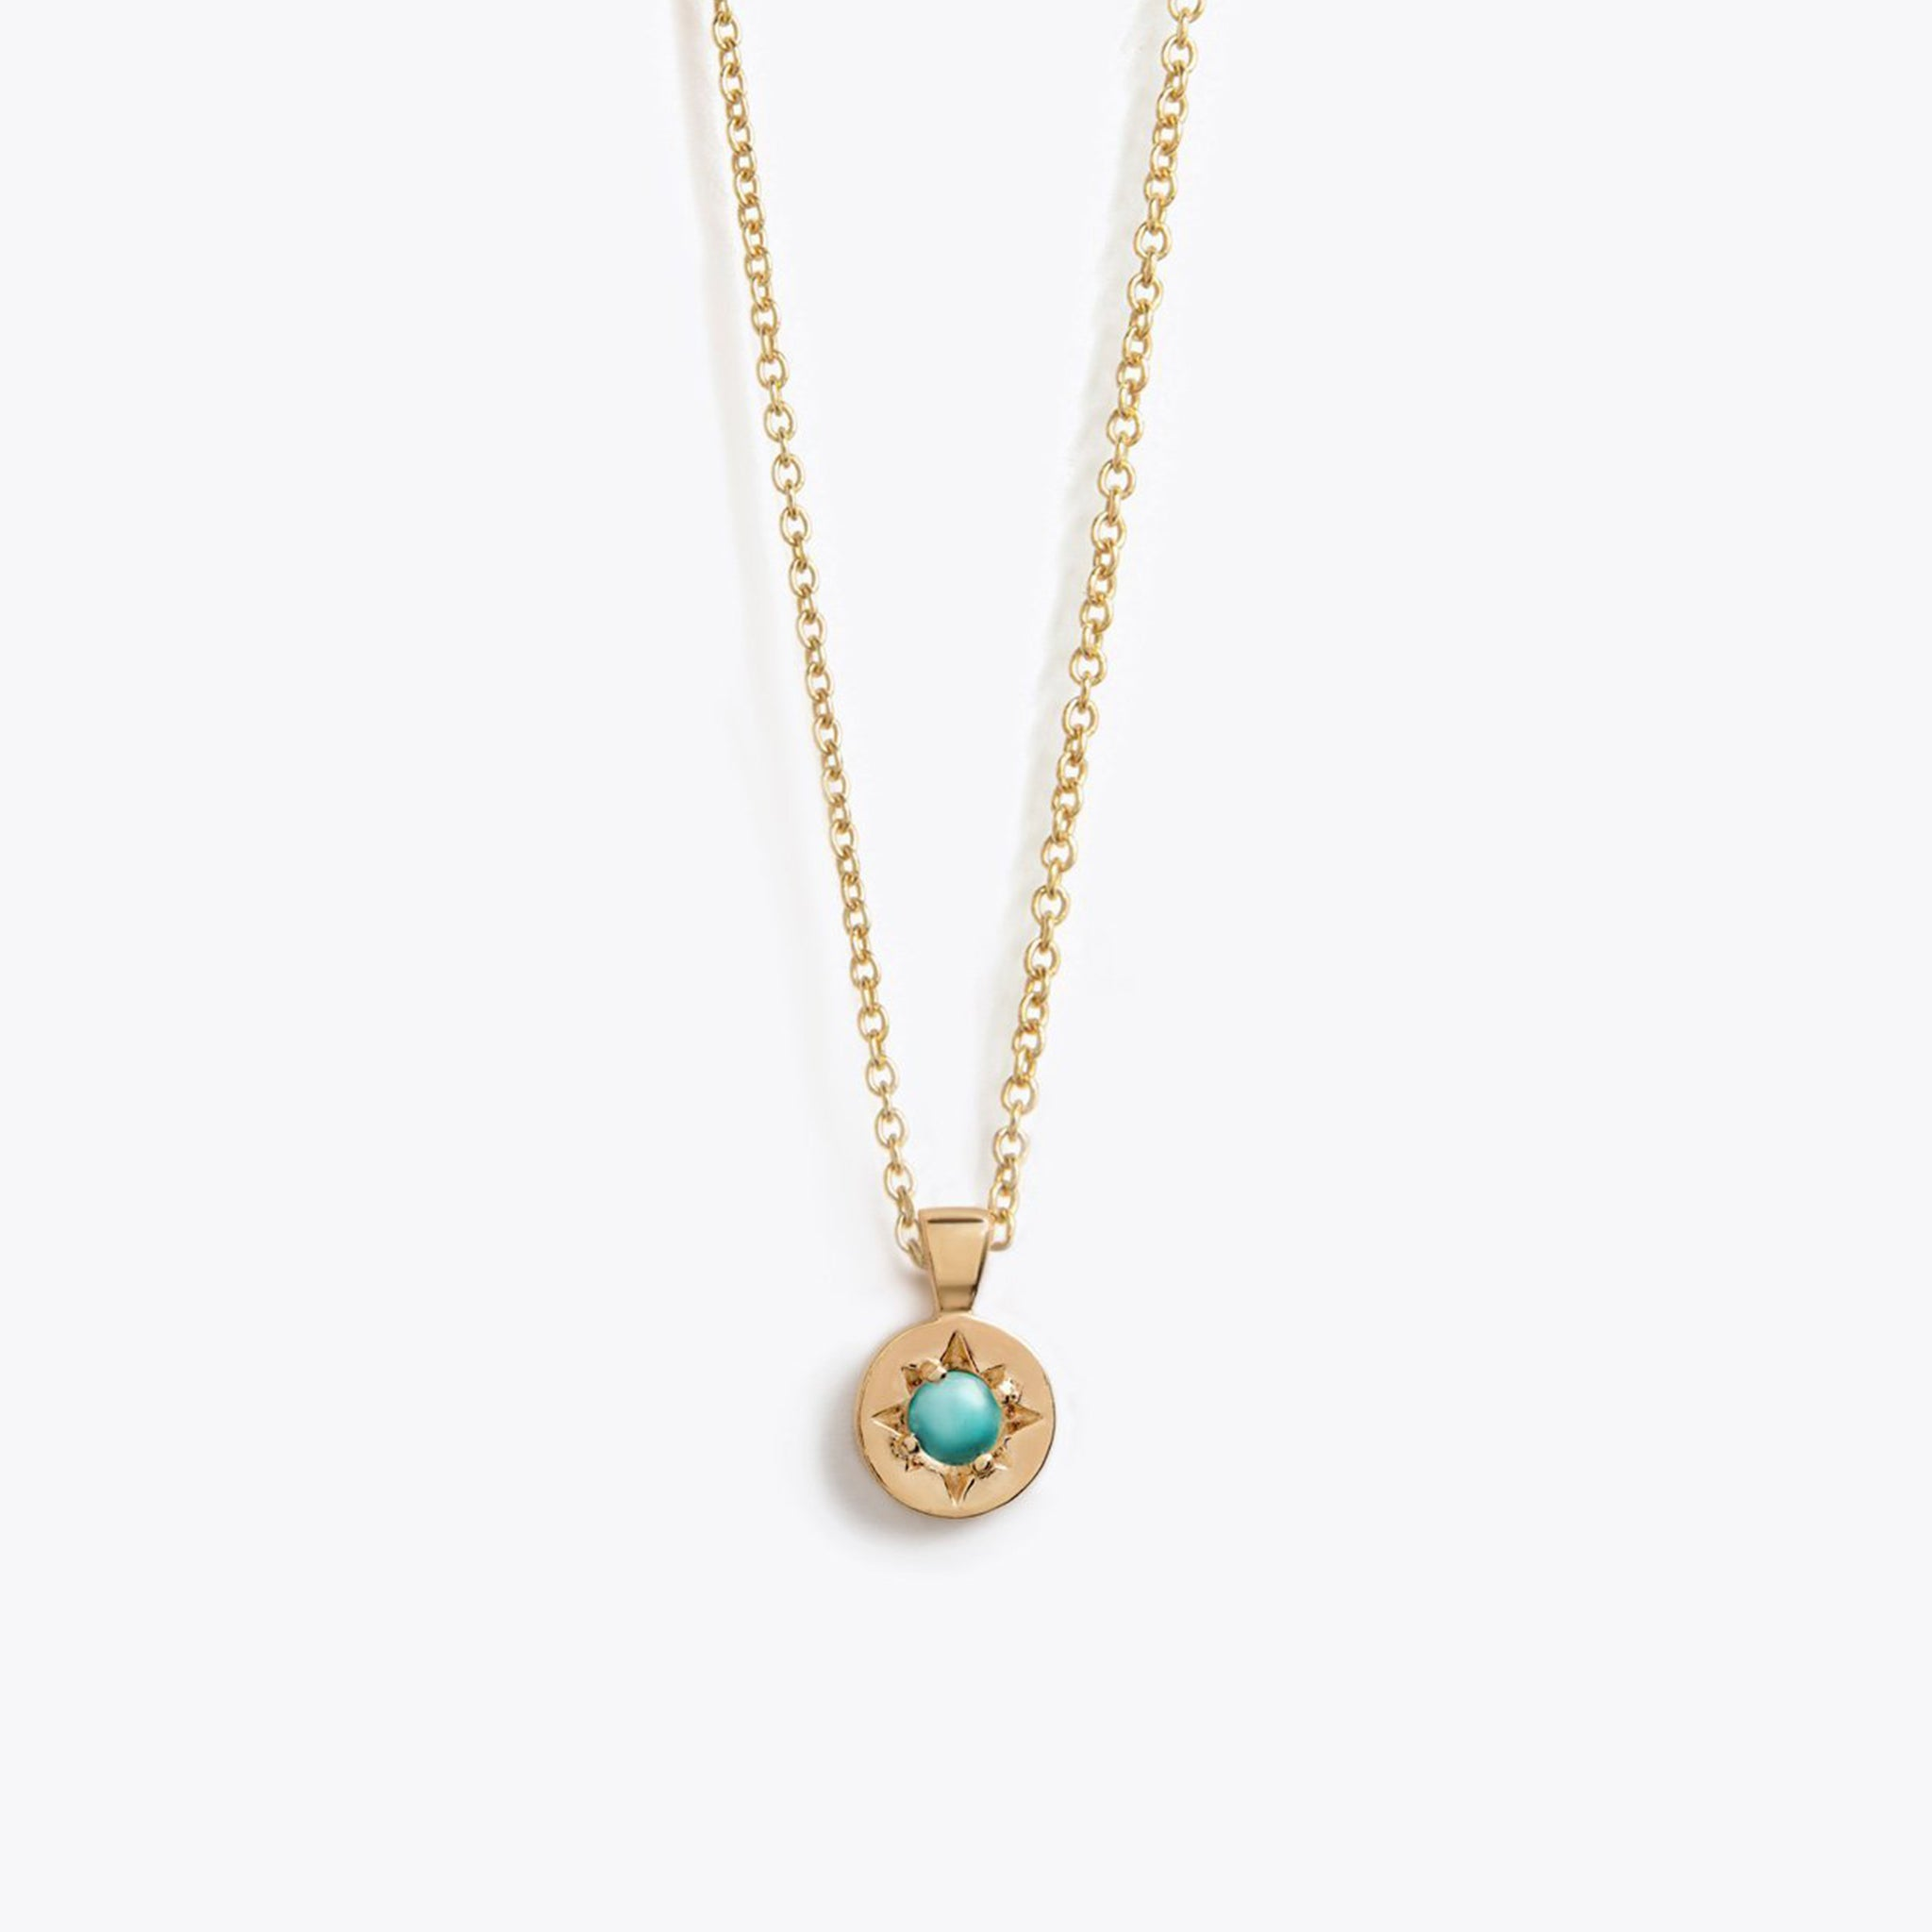 Wanderlust Life gold December birthstone necklace with semi precious Arizona turquoise semi precious gemstone. Handmade birthstone necklace for December, the perfect gift.